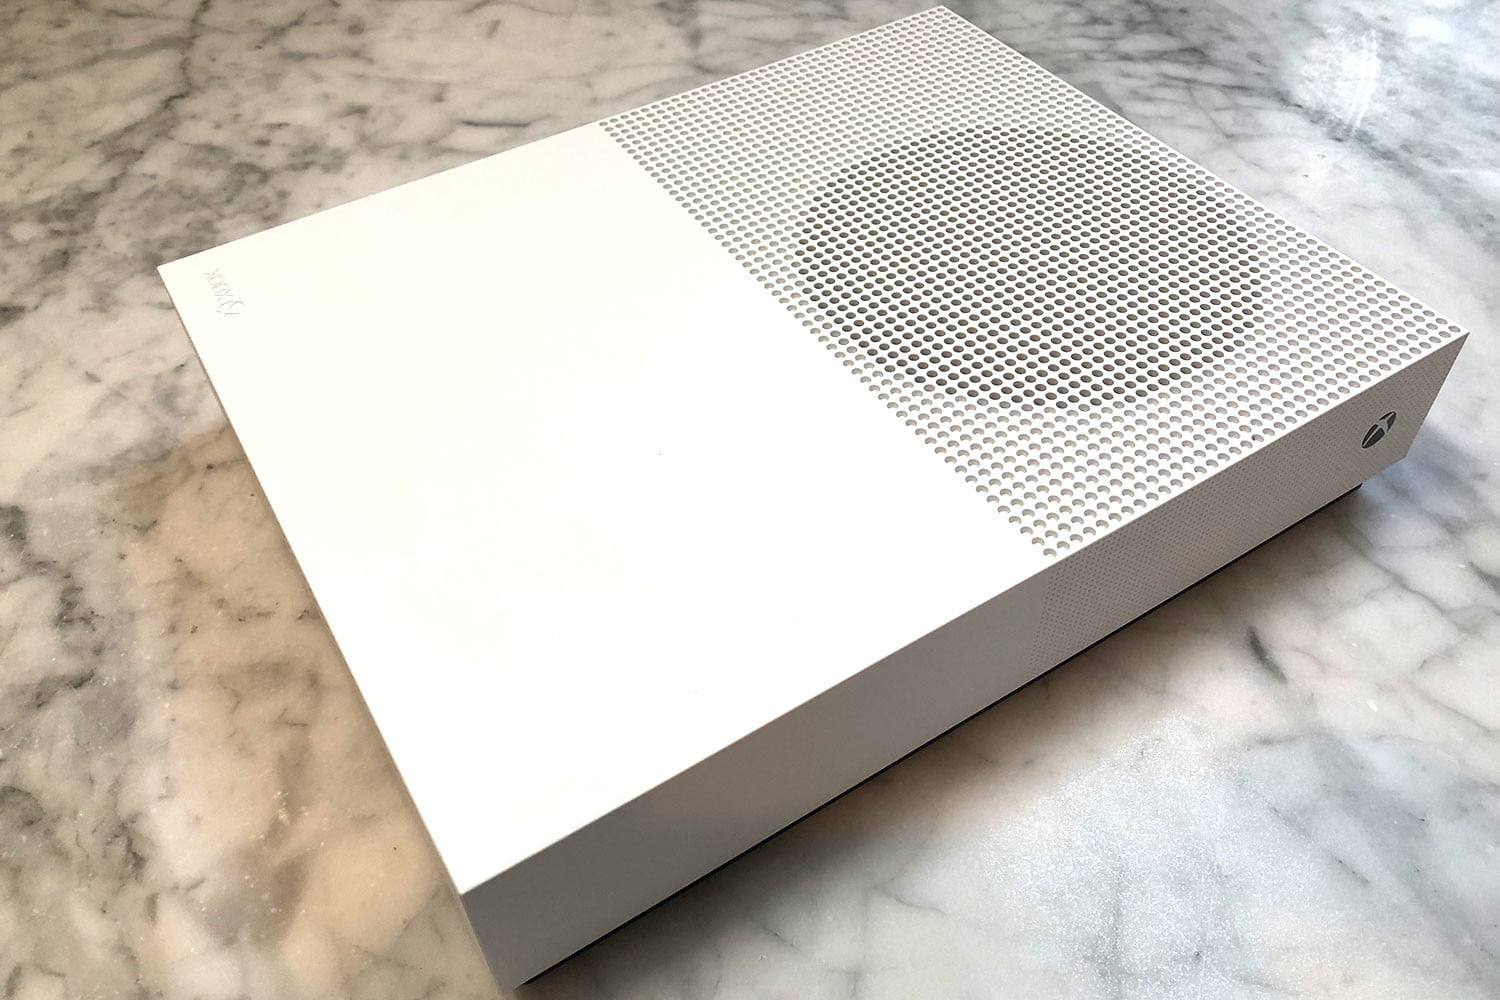 Xbox One S All-Digital Edition Review: Ditching Discs To